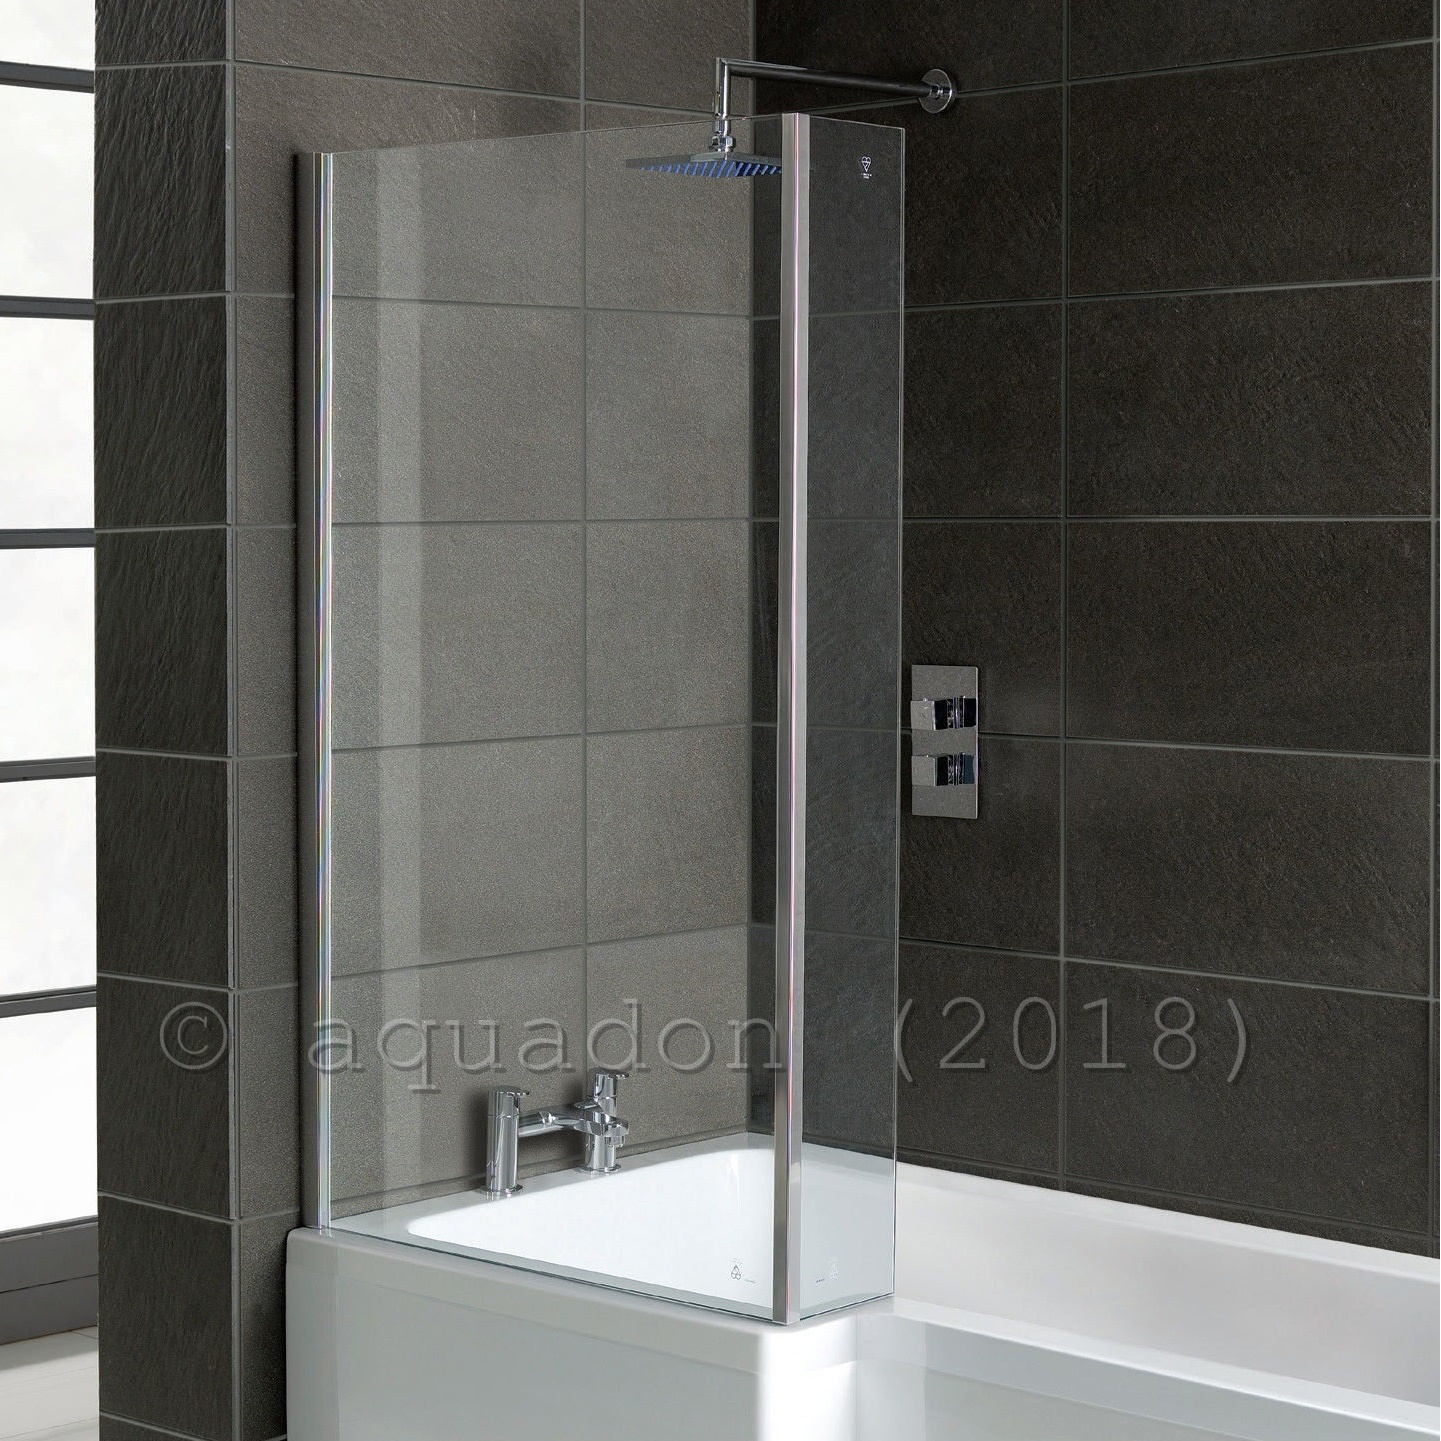 1700 L shape square shower bath with panels, screen & waste | eBay